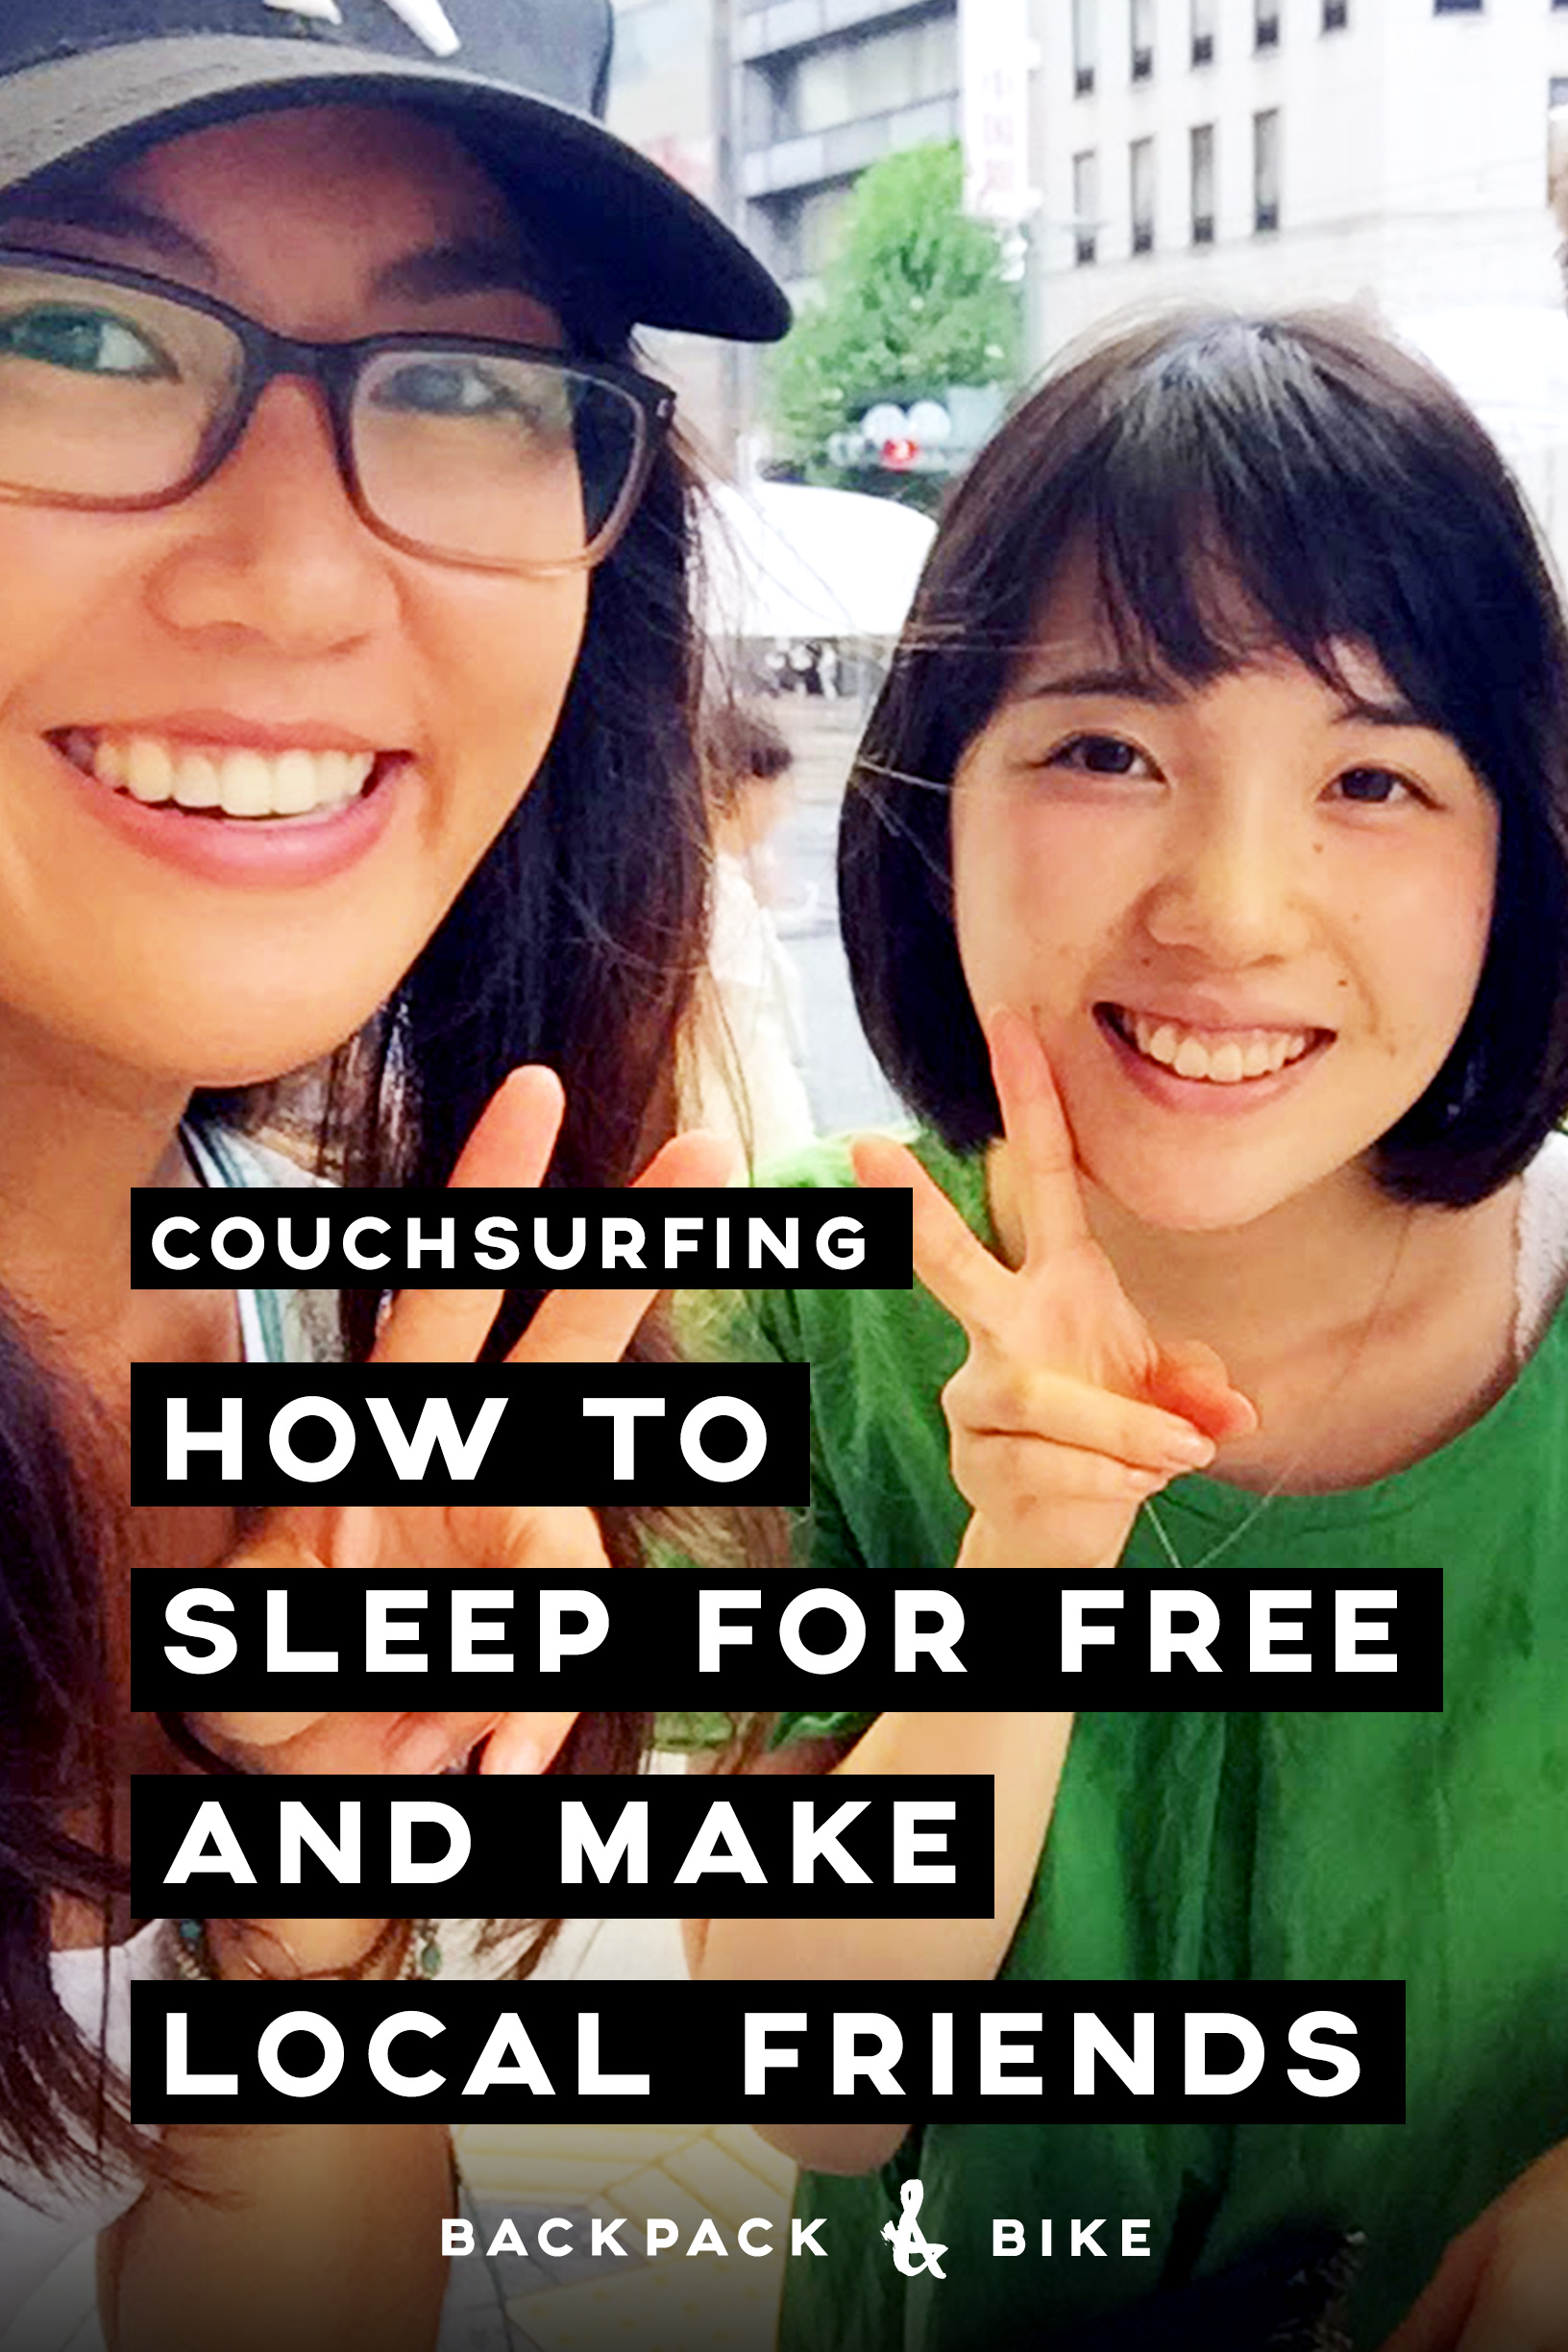 Is Couch Surfing safe? Does it cost any money? How do I meet locals in new countries? Both surfers and hosts tell all answering these questions and more!